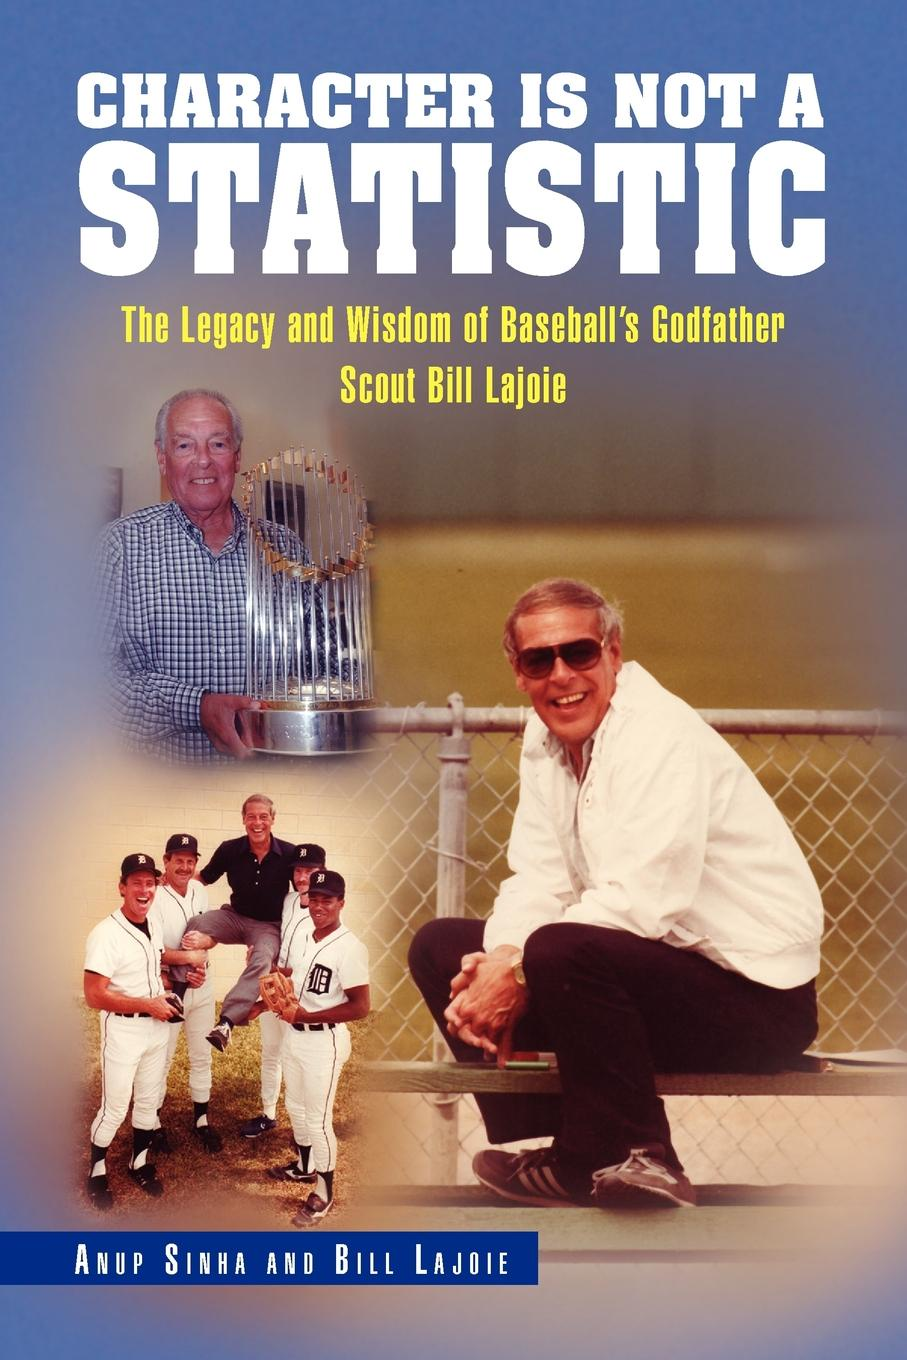 Sinha And Bi Anup Sinha and Bill Lajoie, Anup Sinha and Bill Lajoie Character Is Not a Statistic. The Legacy and Wisdom of Baseball's Godfather Scout Bill Lajoie bill flanagan bill flanigan u2 at the end of the world